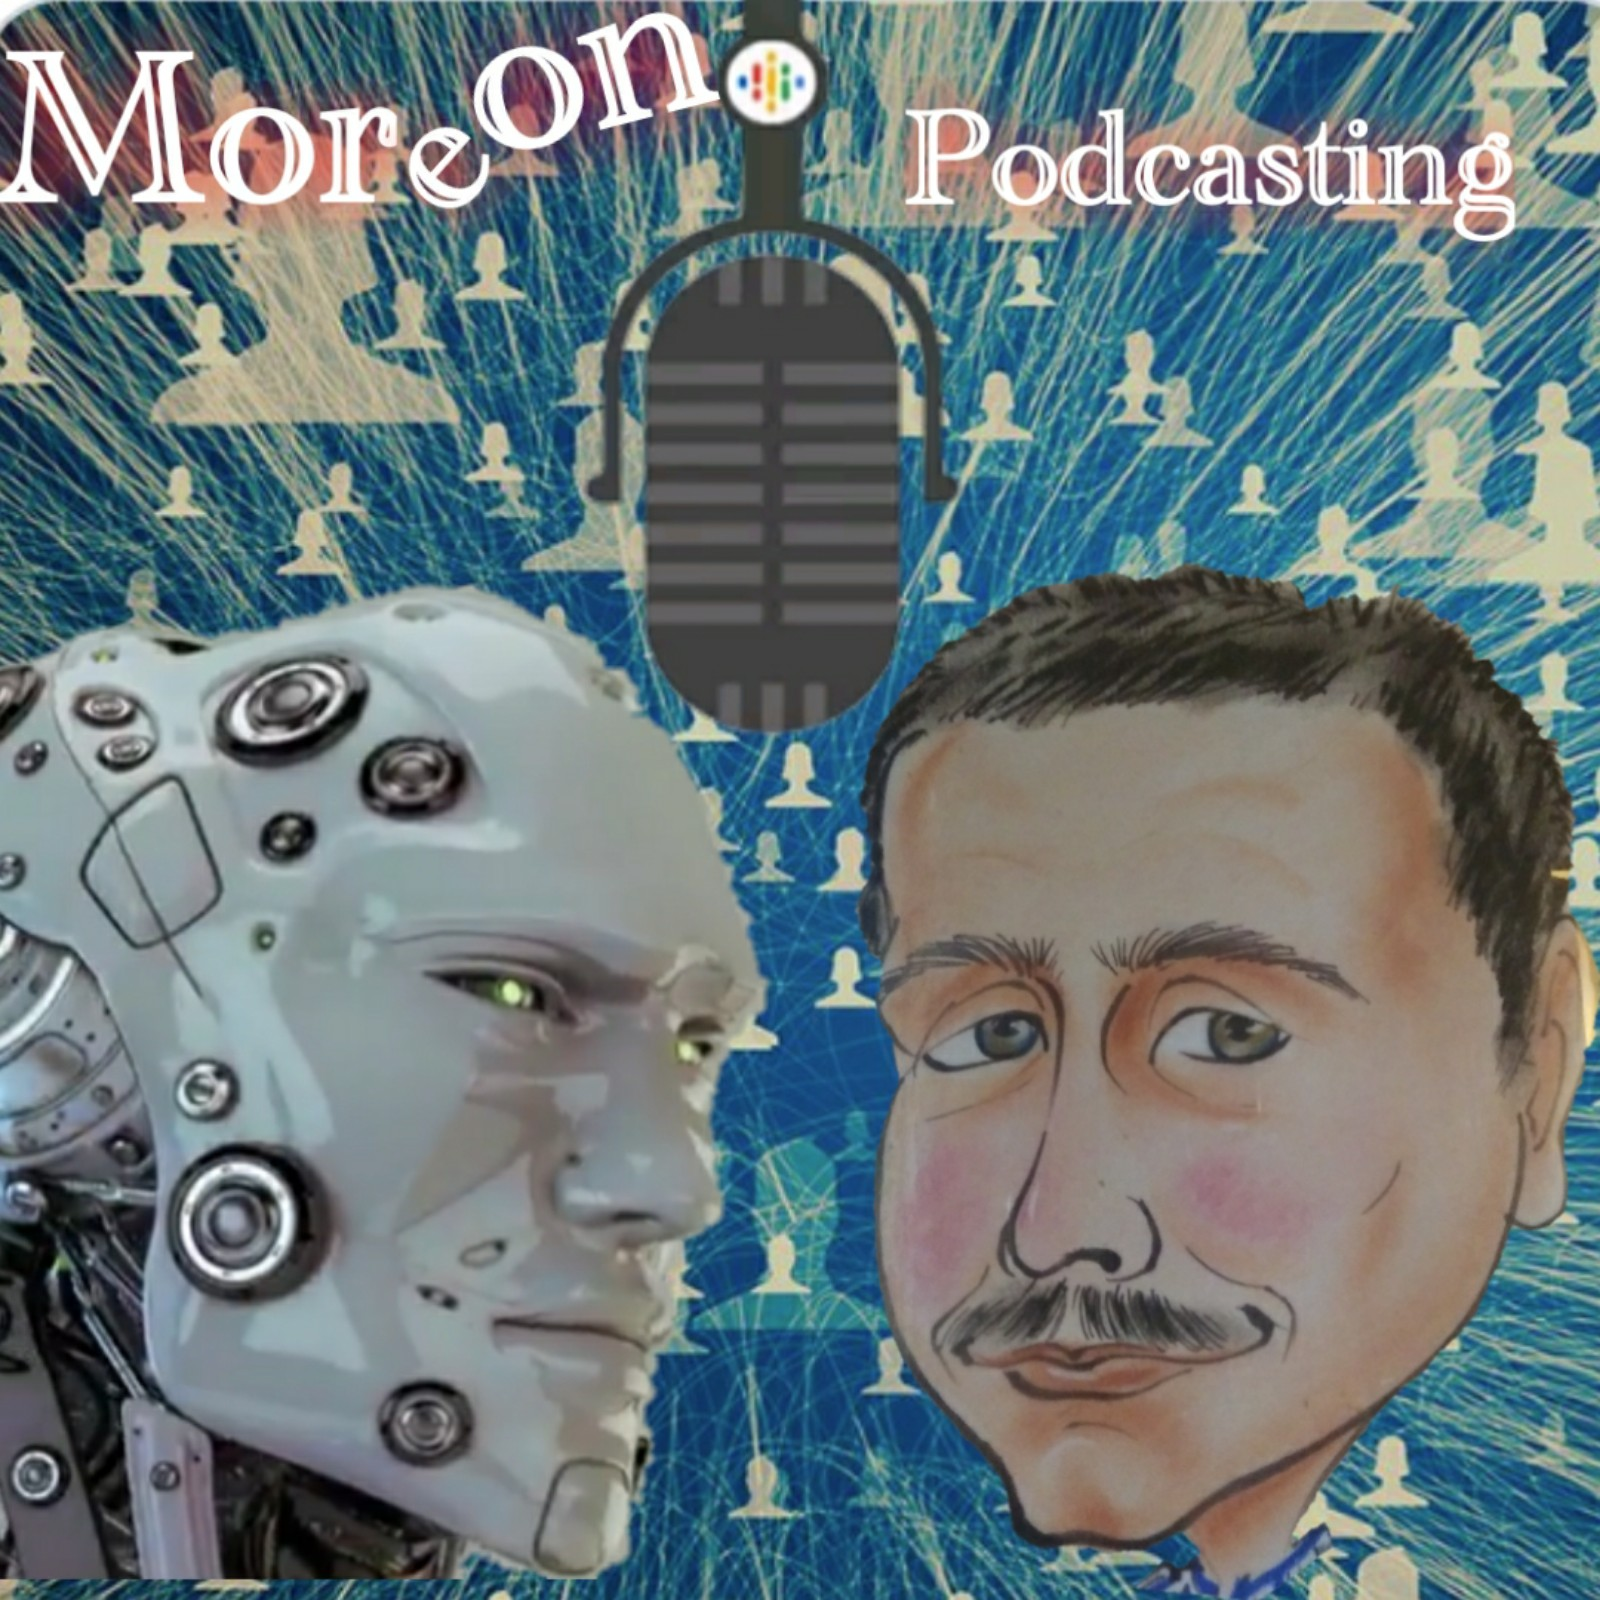 More On Podcasting